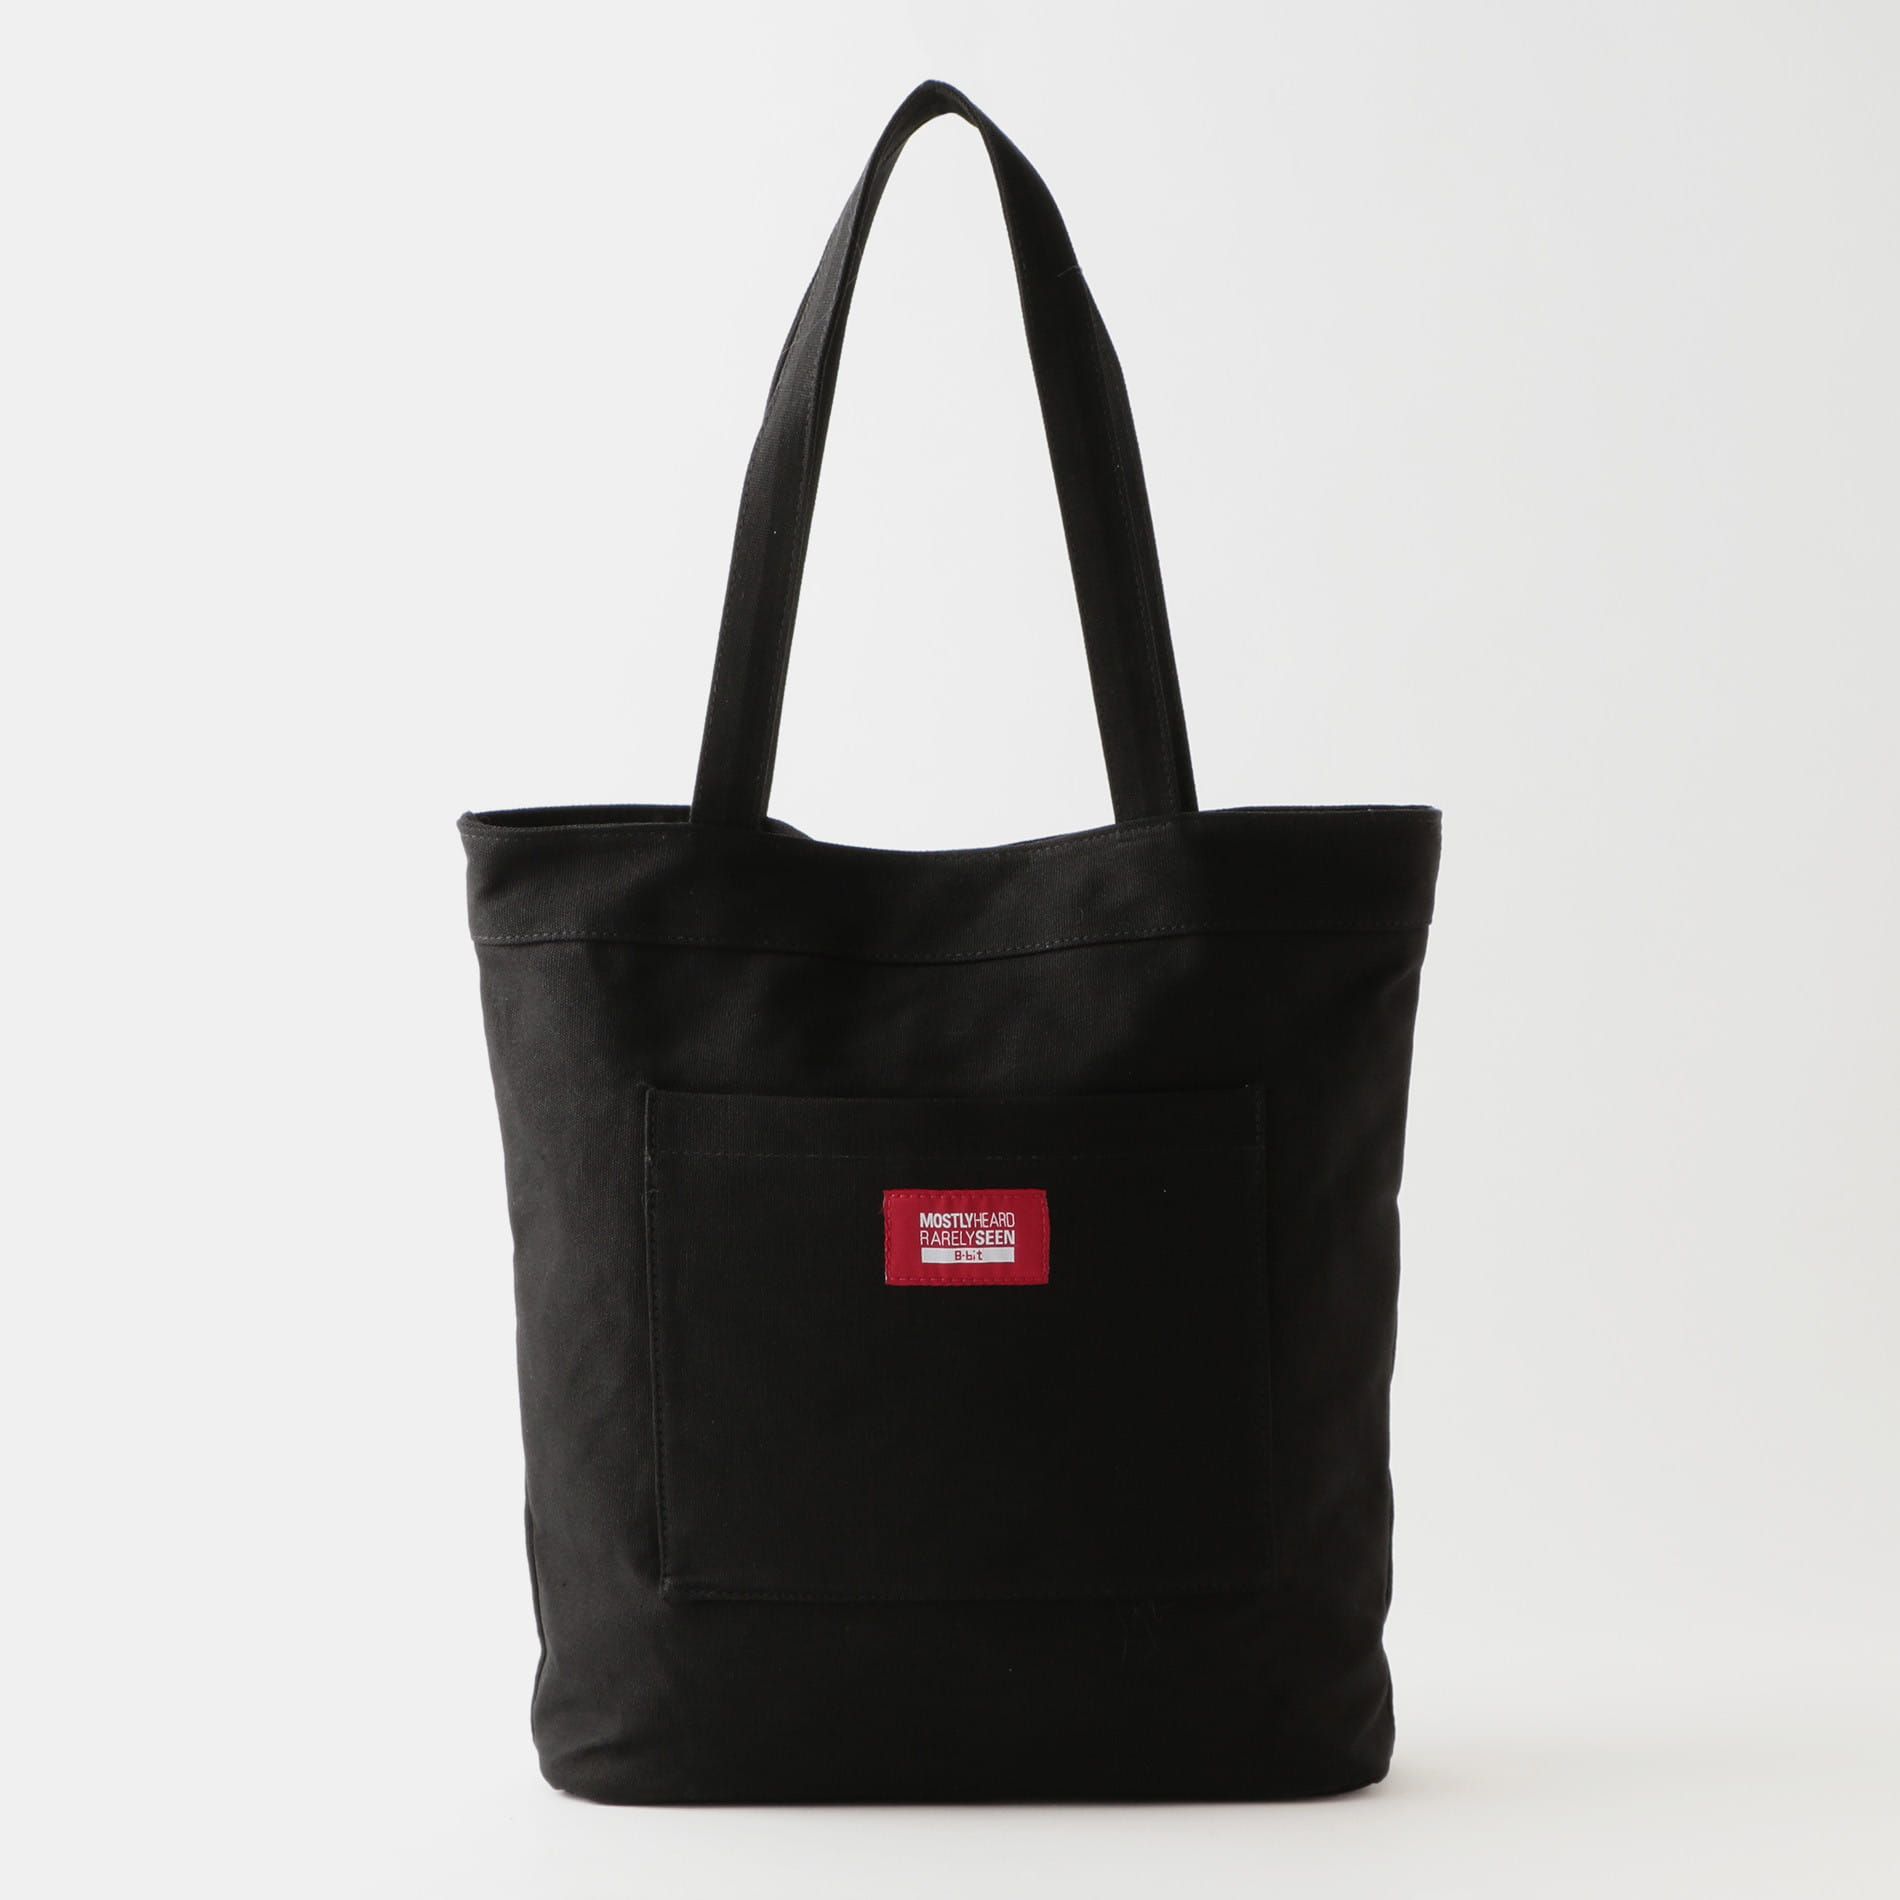 【8-BIT by MOSTLY HEARD RARELY SEEN】トートバッグ -GLOSSY TOTE-